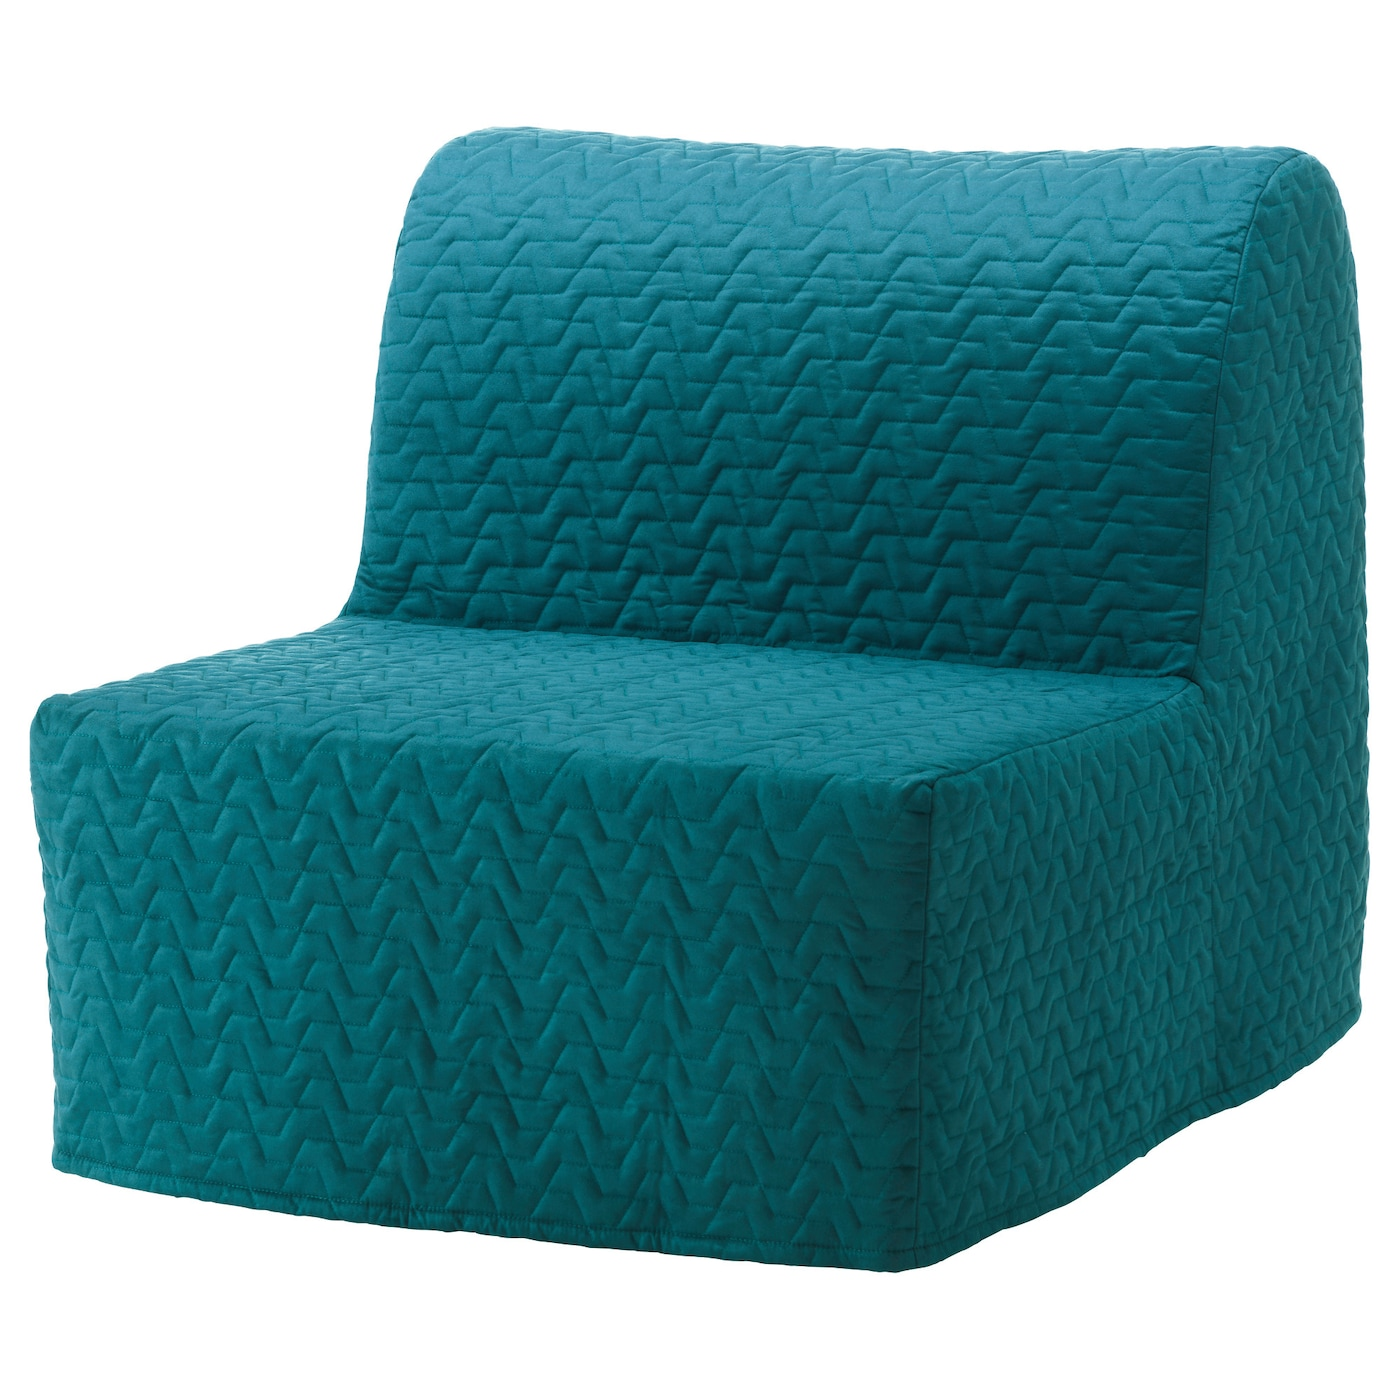 lycksele chair bed cover vallarum turquoise ikea. Black Bedroom Furniture Sets. Home Design Ideas